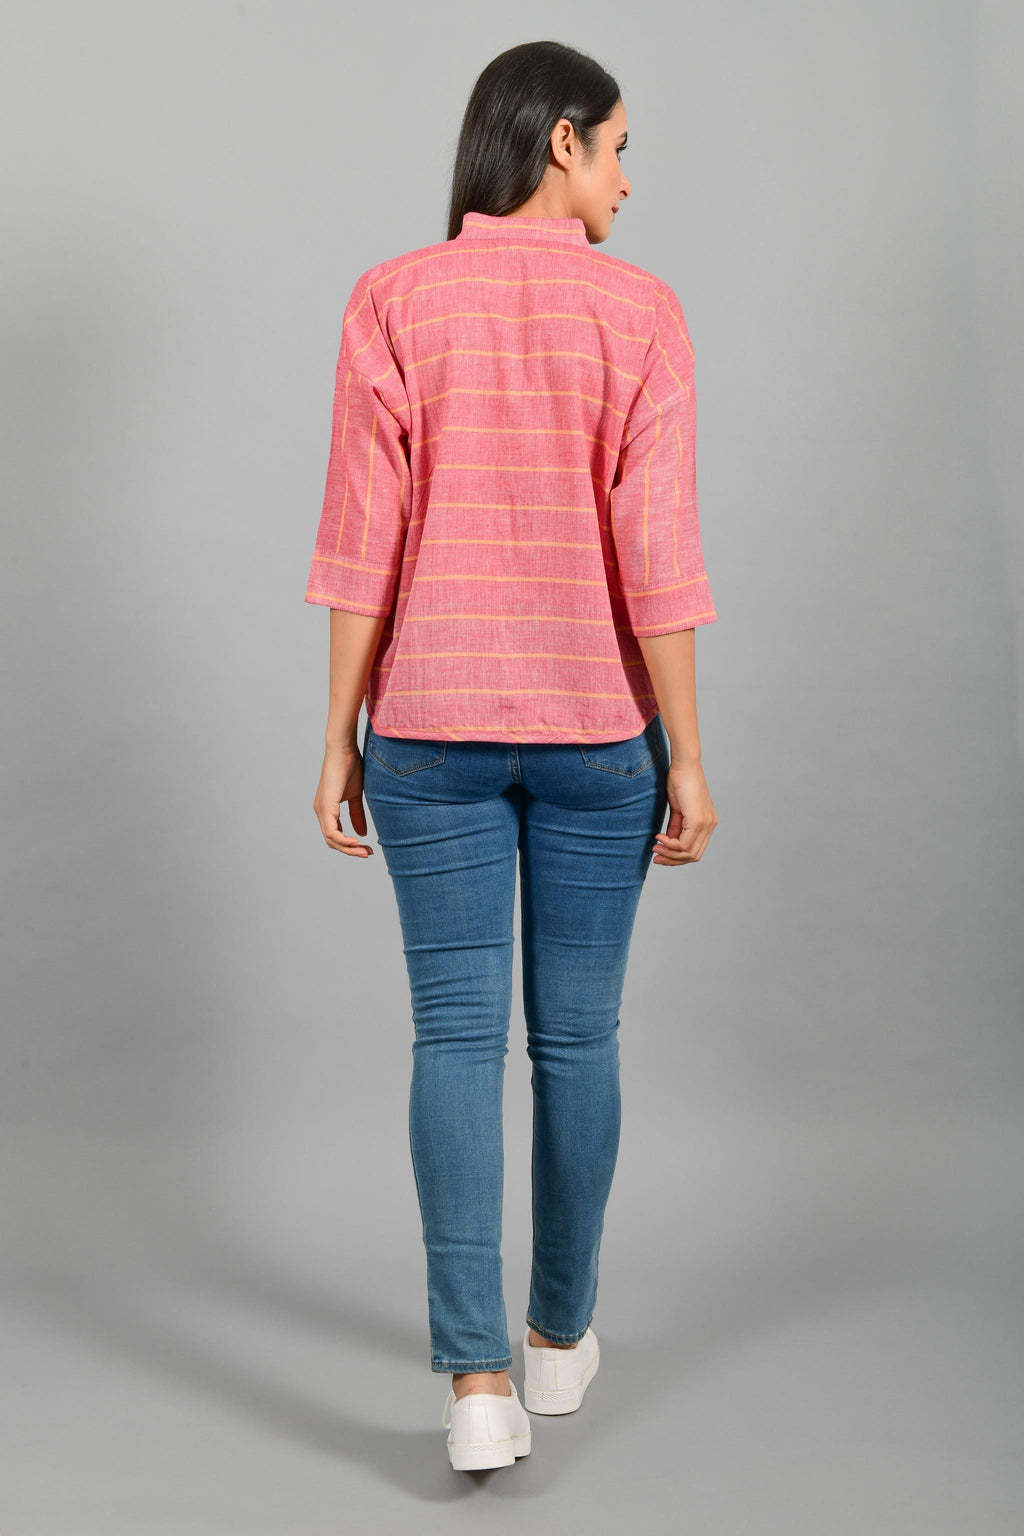 Back pose of an Indian female womenswear fashion model in a red chambray with orange stripes handspun and handwoven khadi cotton free size top by Cotton Rack.